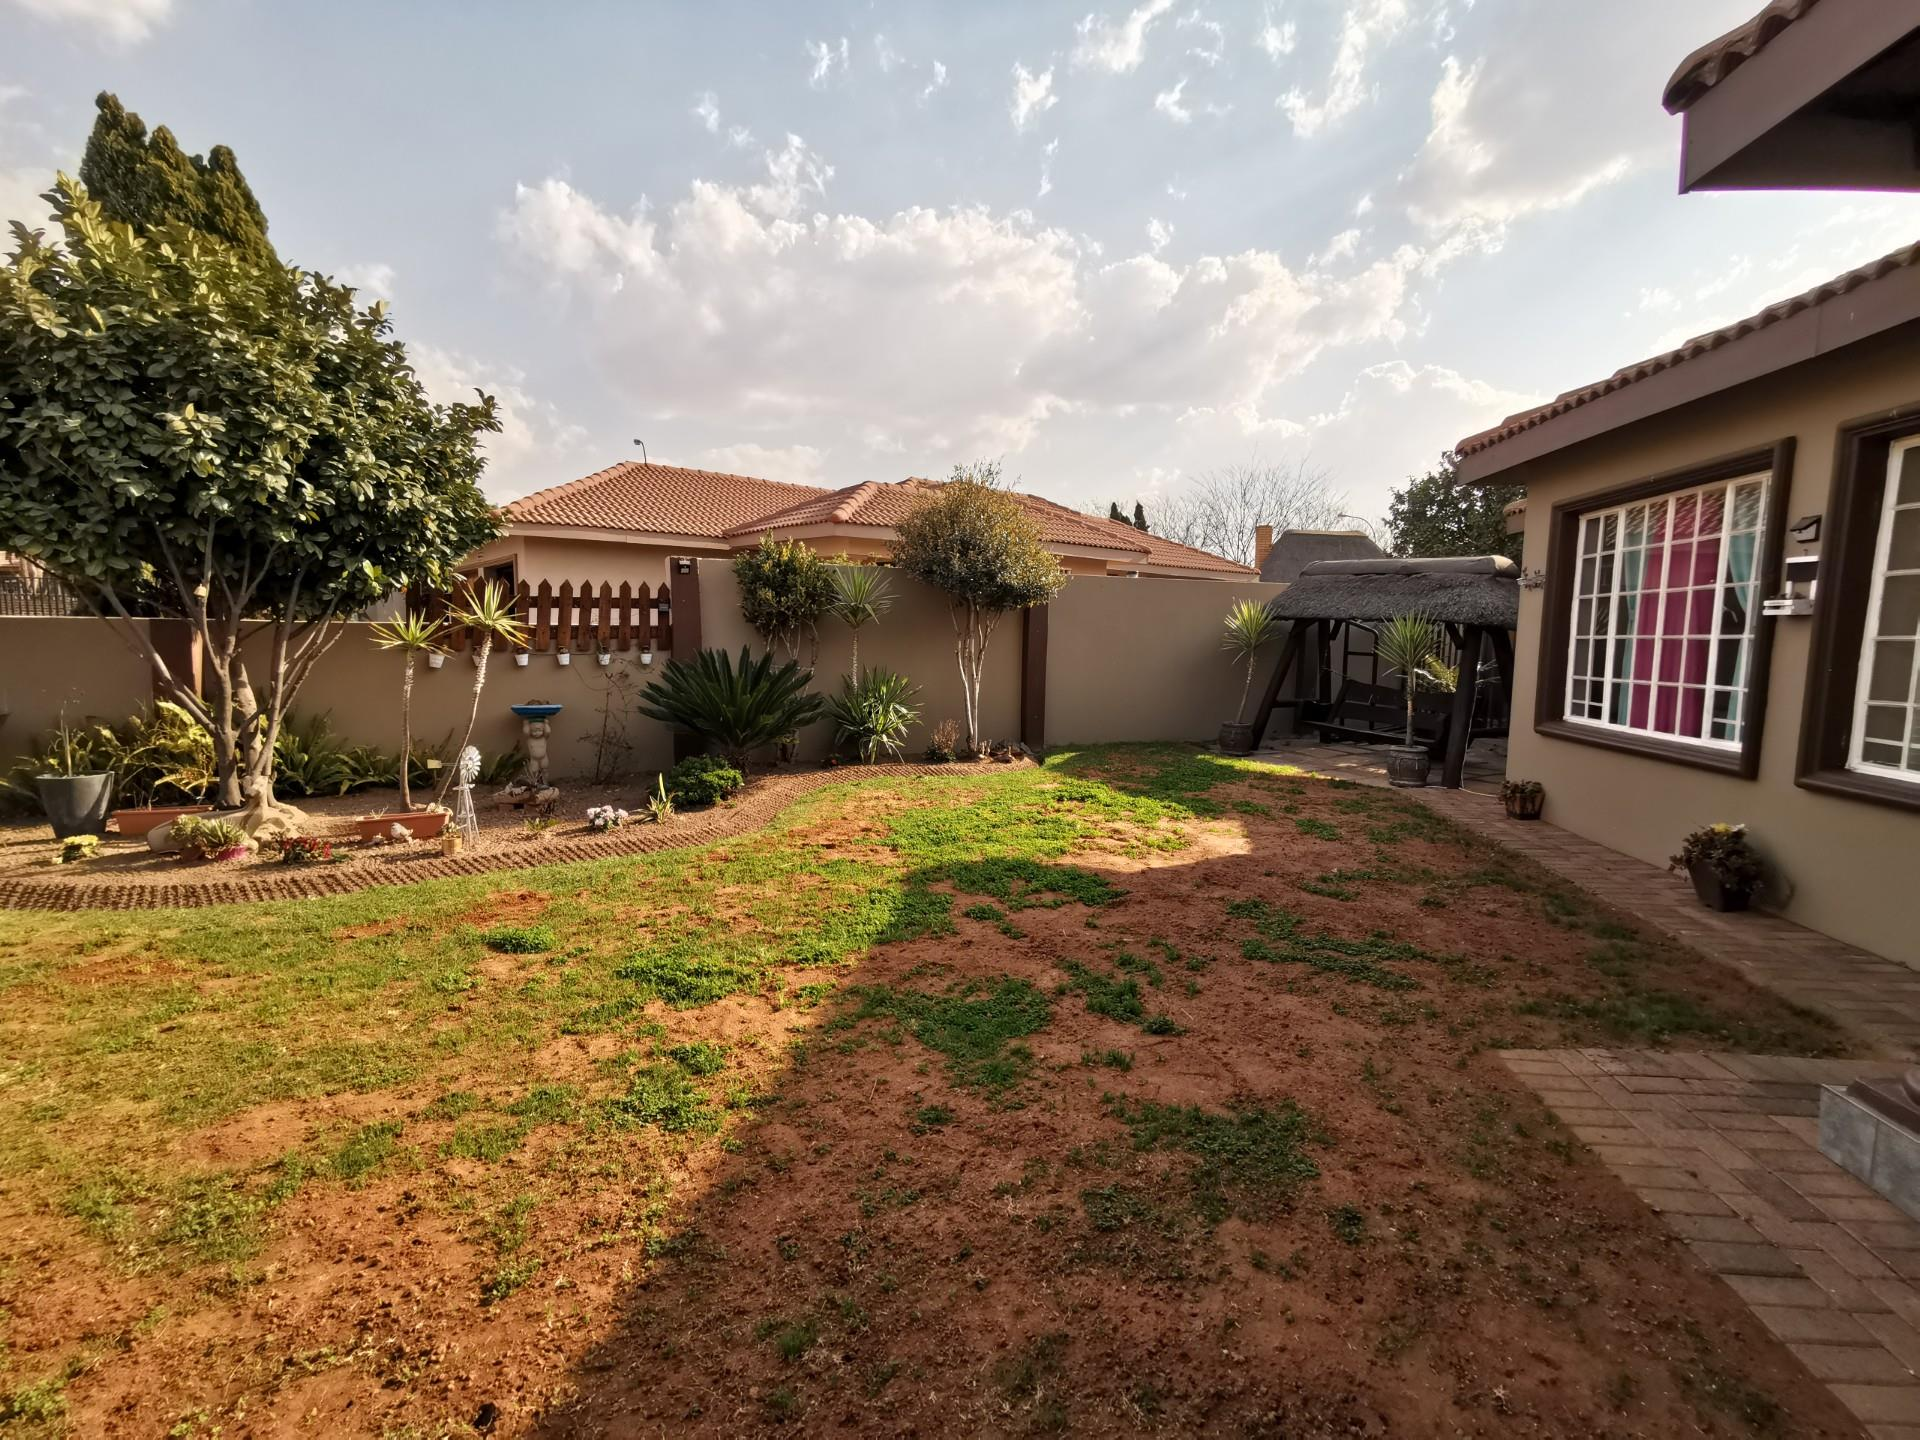 4 Bedroom Town house For Sale in Kriel